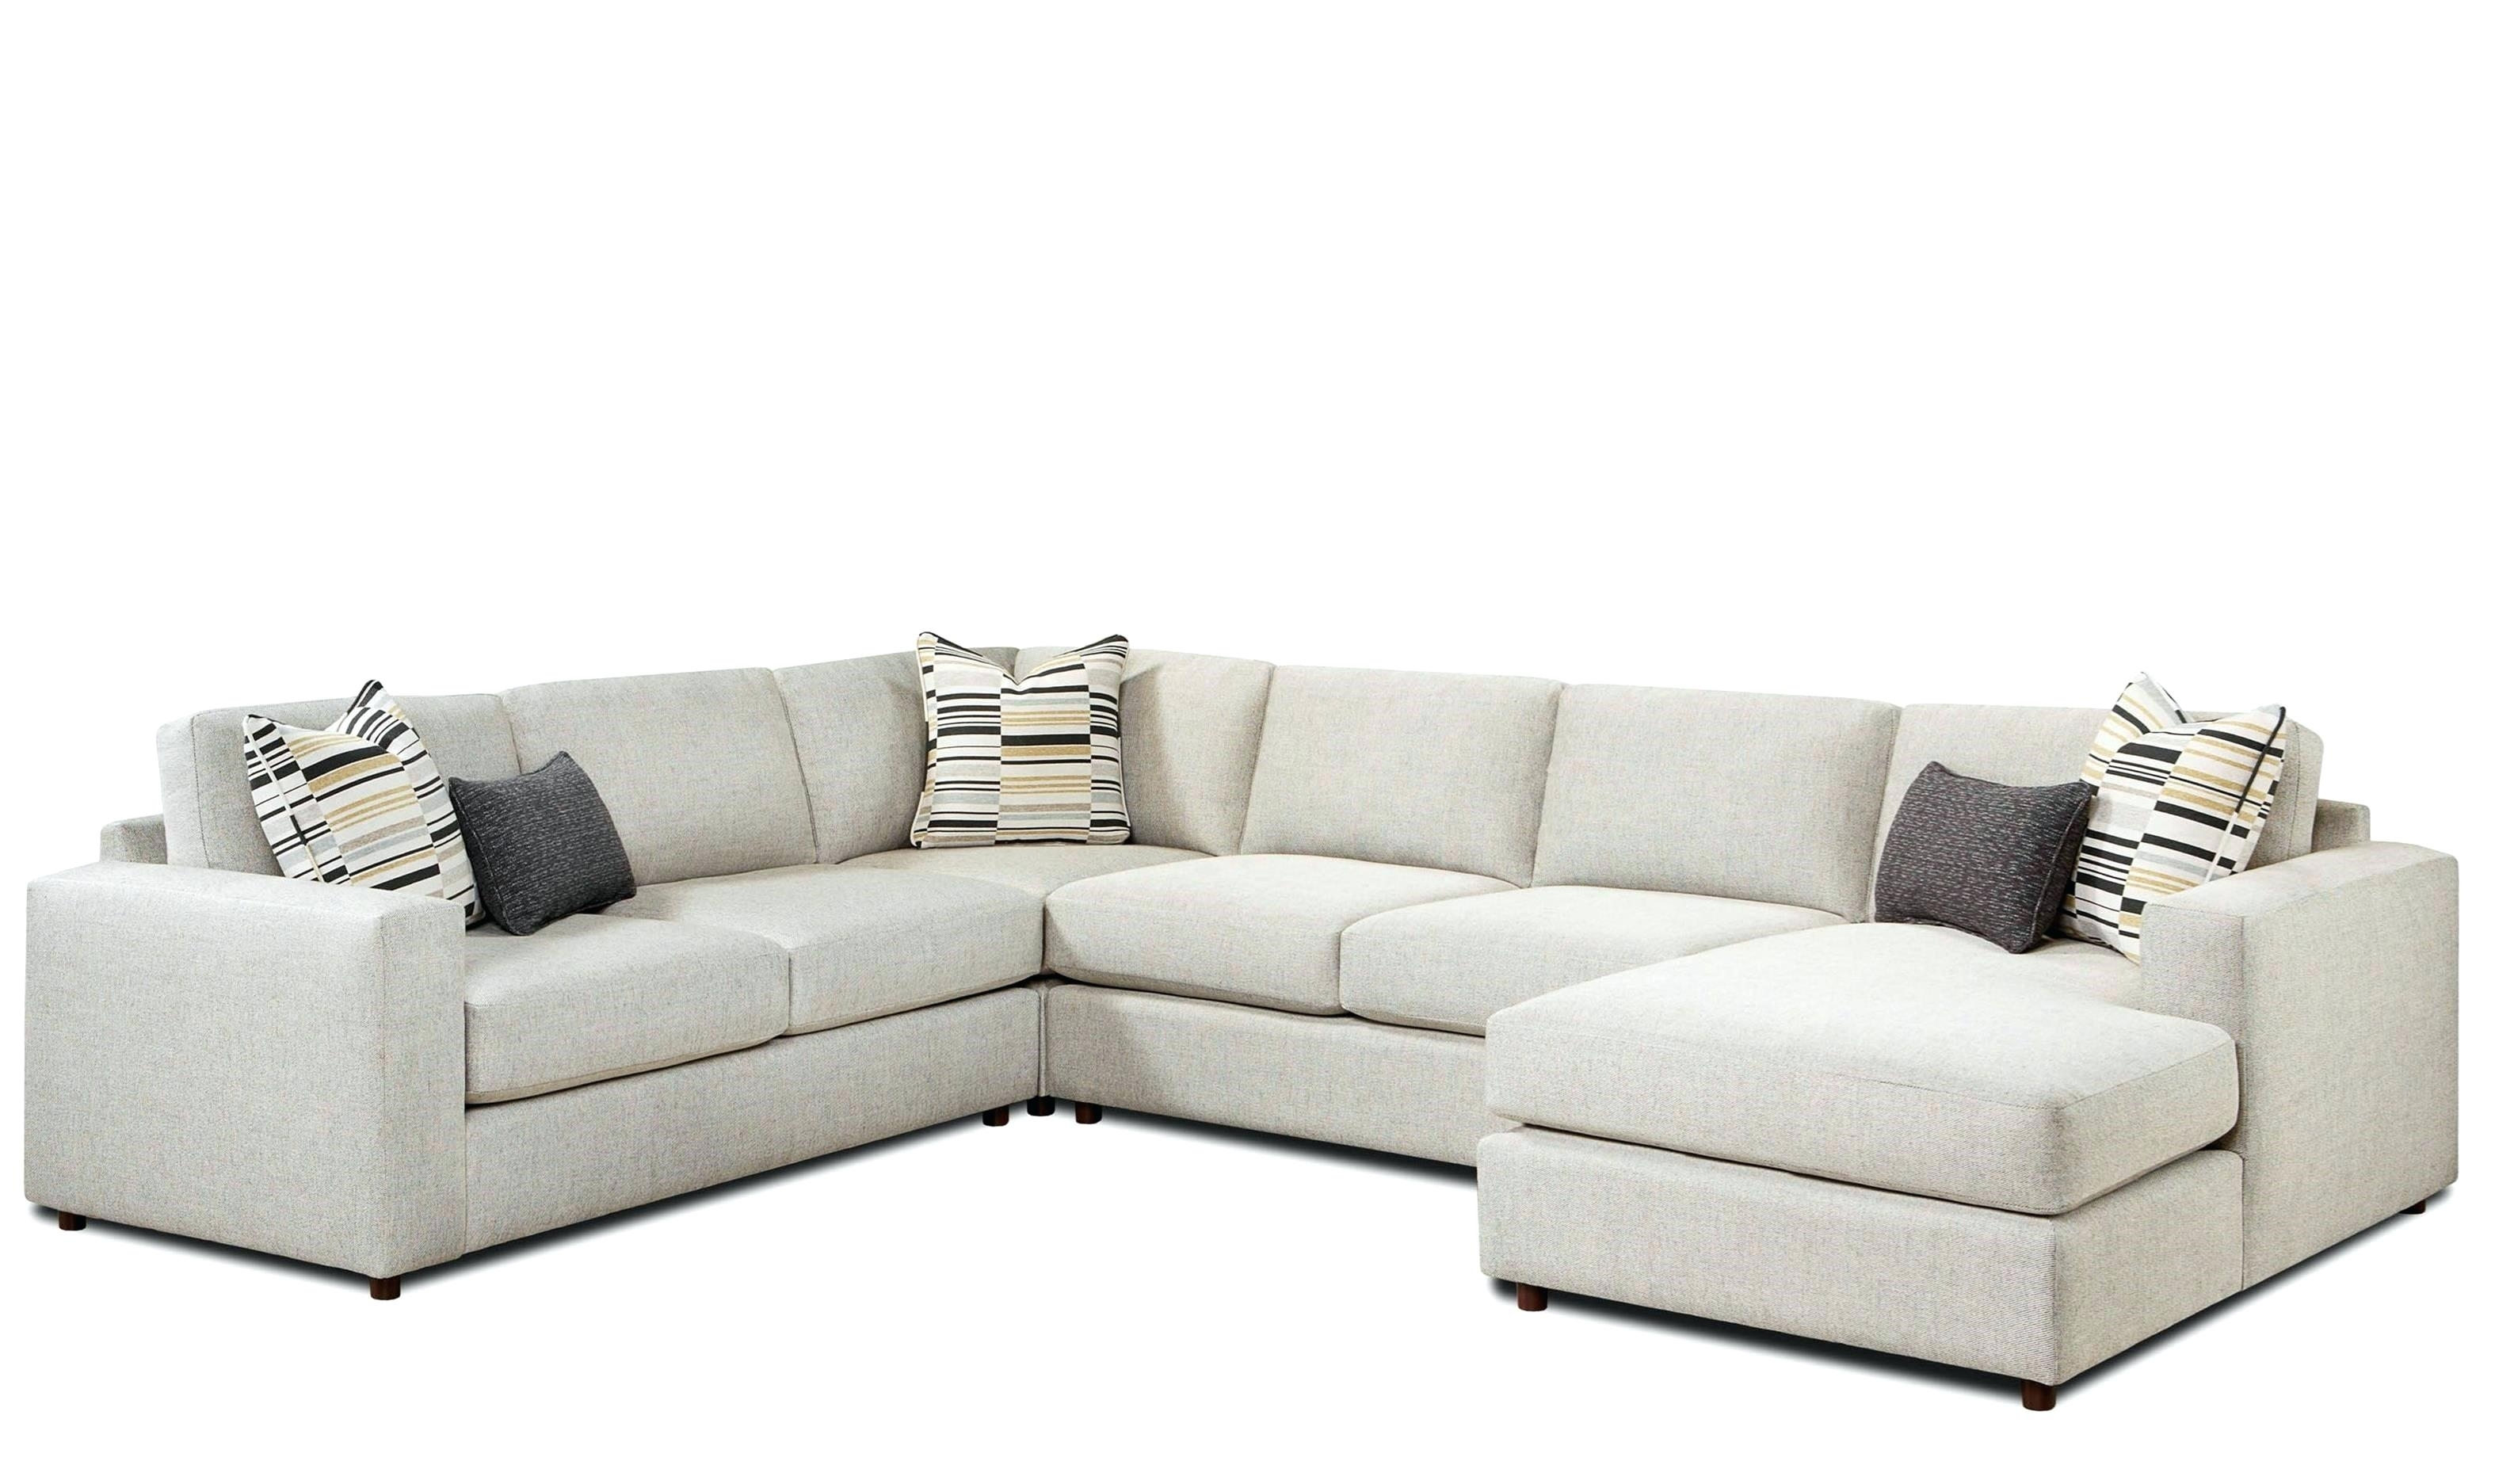 4 Piece Sectional With Chaise Fusion Furniture 4 Piece Sectional In Alder 4 Piece Sectionals (Photo 23 of 25)